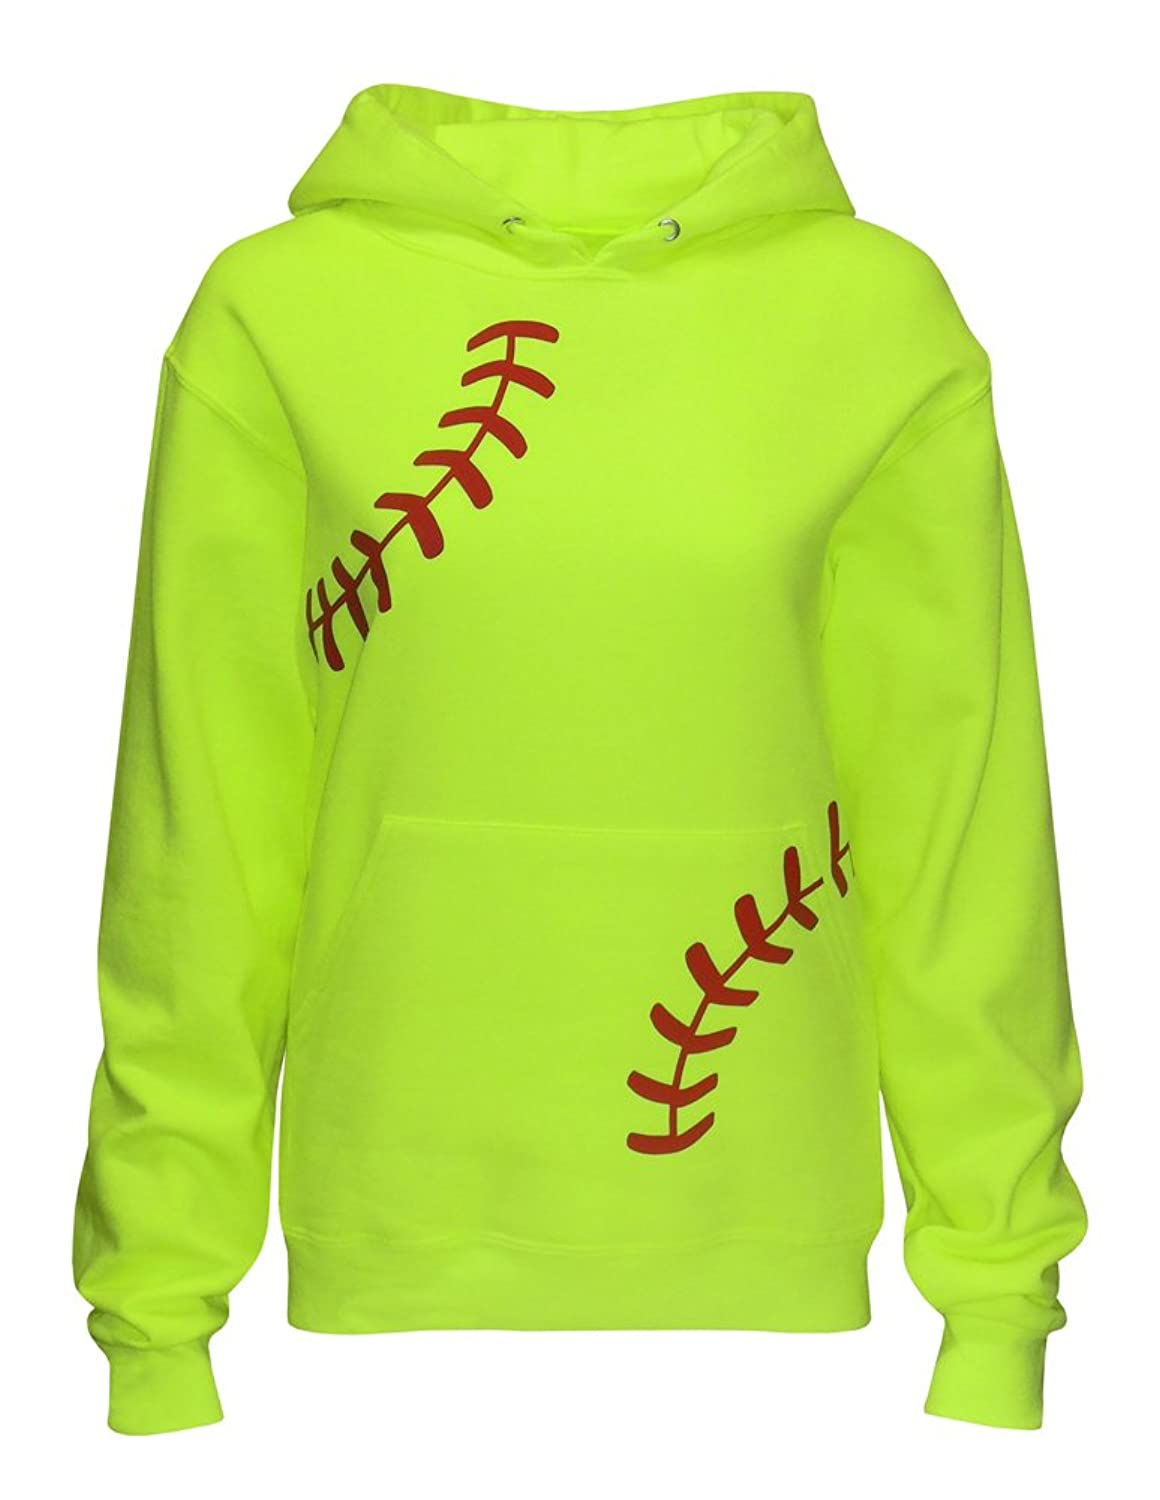 e795ec1ebf Softball Sweatshirts Amazon - Cotswold Hire